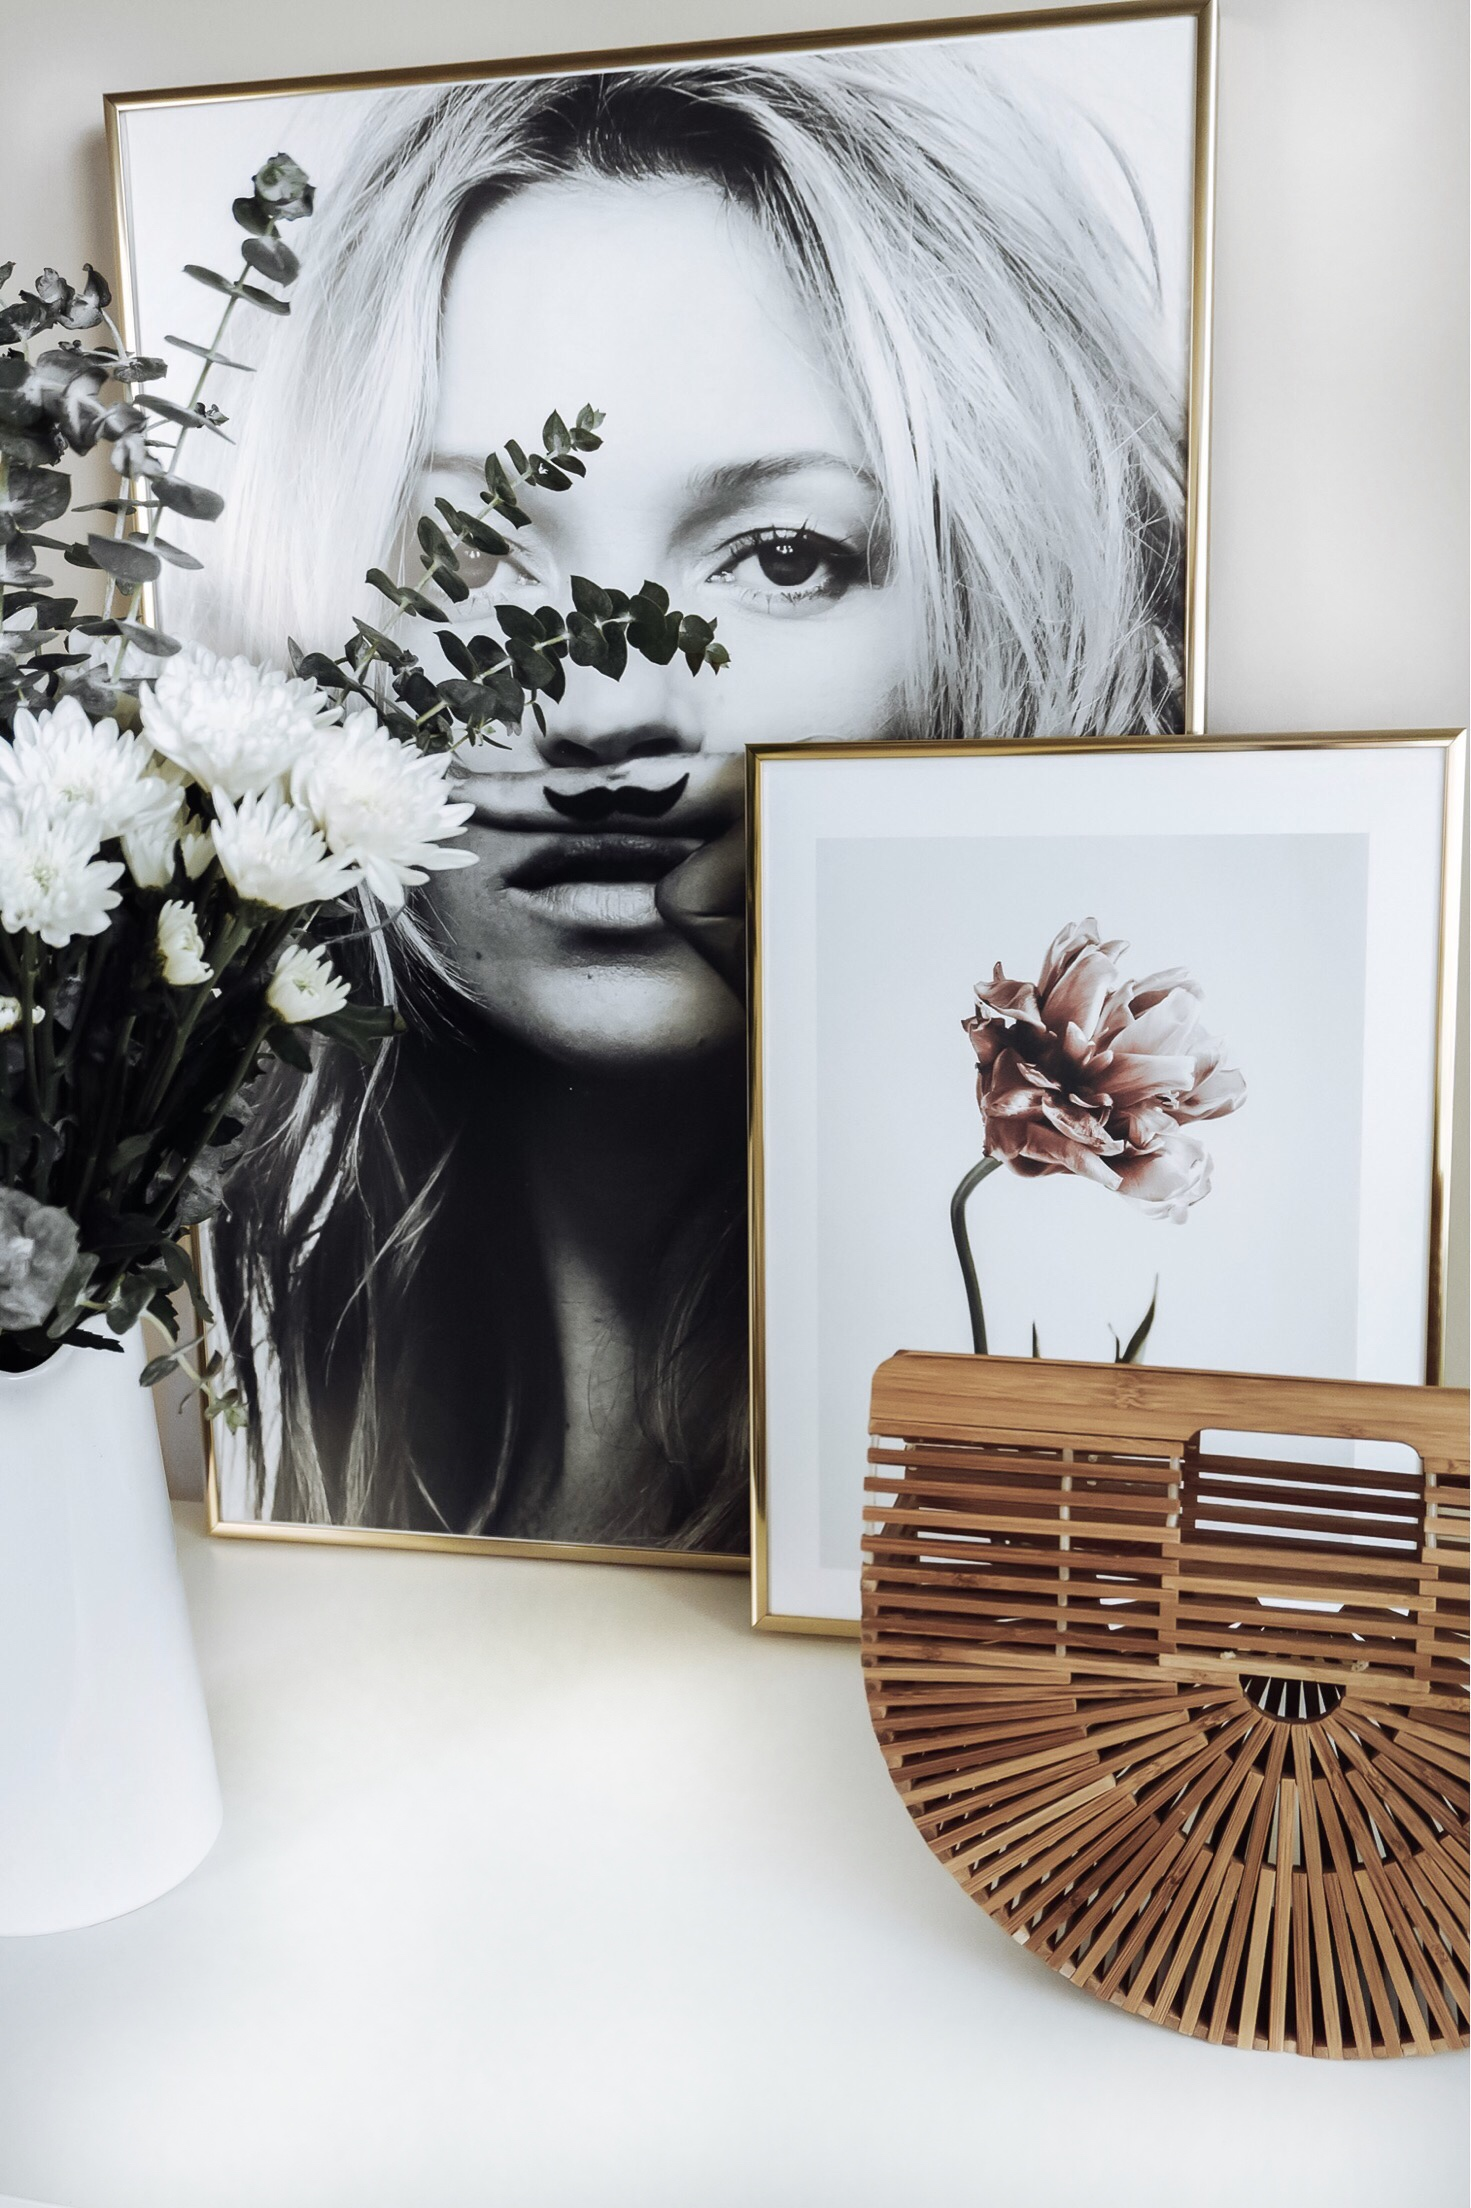 Tiffany Jais Houston fashion and lifestyle blogger | Friday feels | Deseno art prints Kate Moss, Life is a joke print | Scandinavian interiors Pink Tulip Print, home decor  |